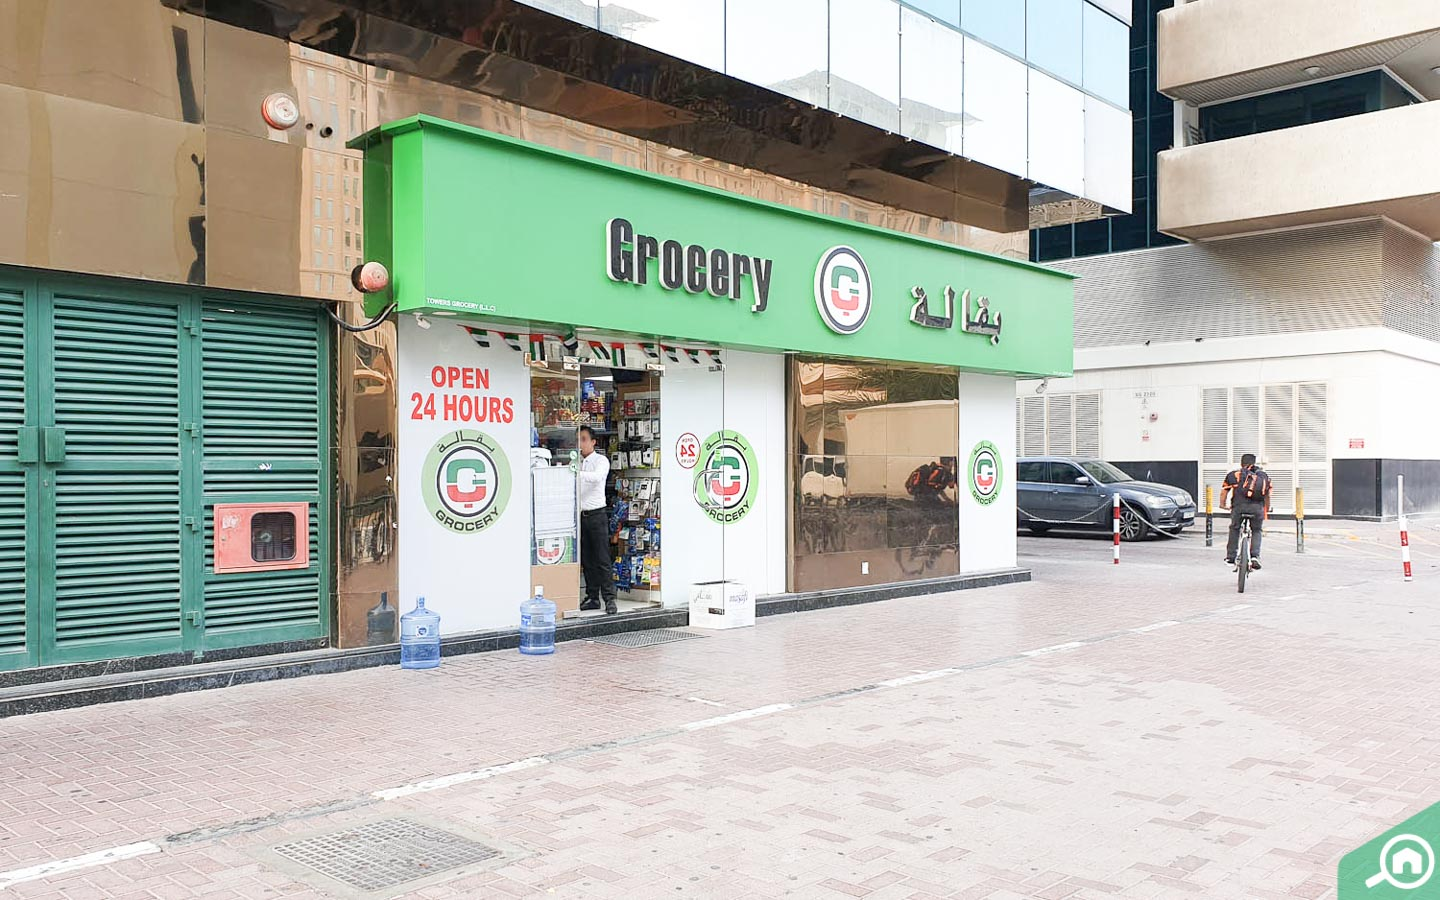 A grocery store located near Al Attar Tower